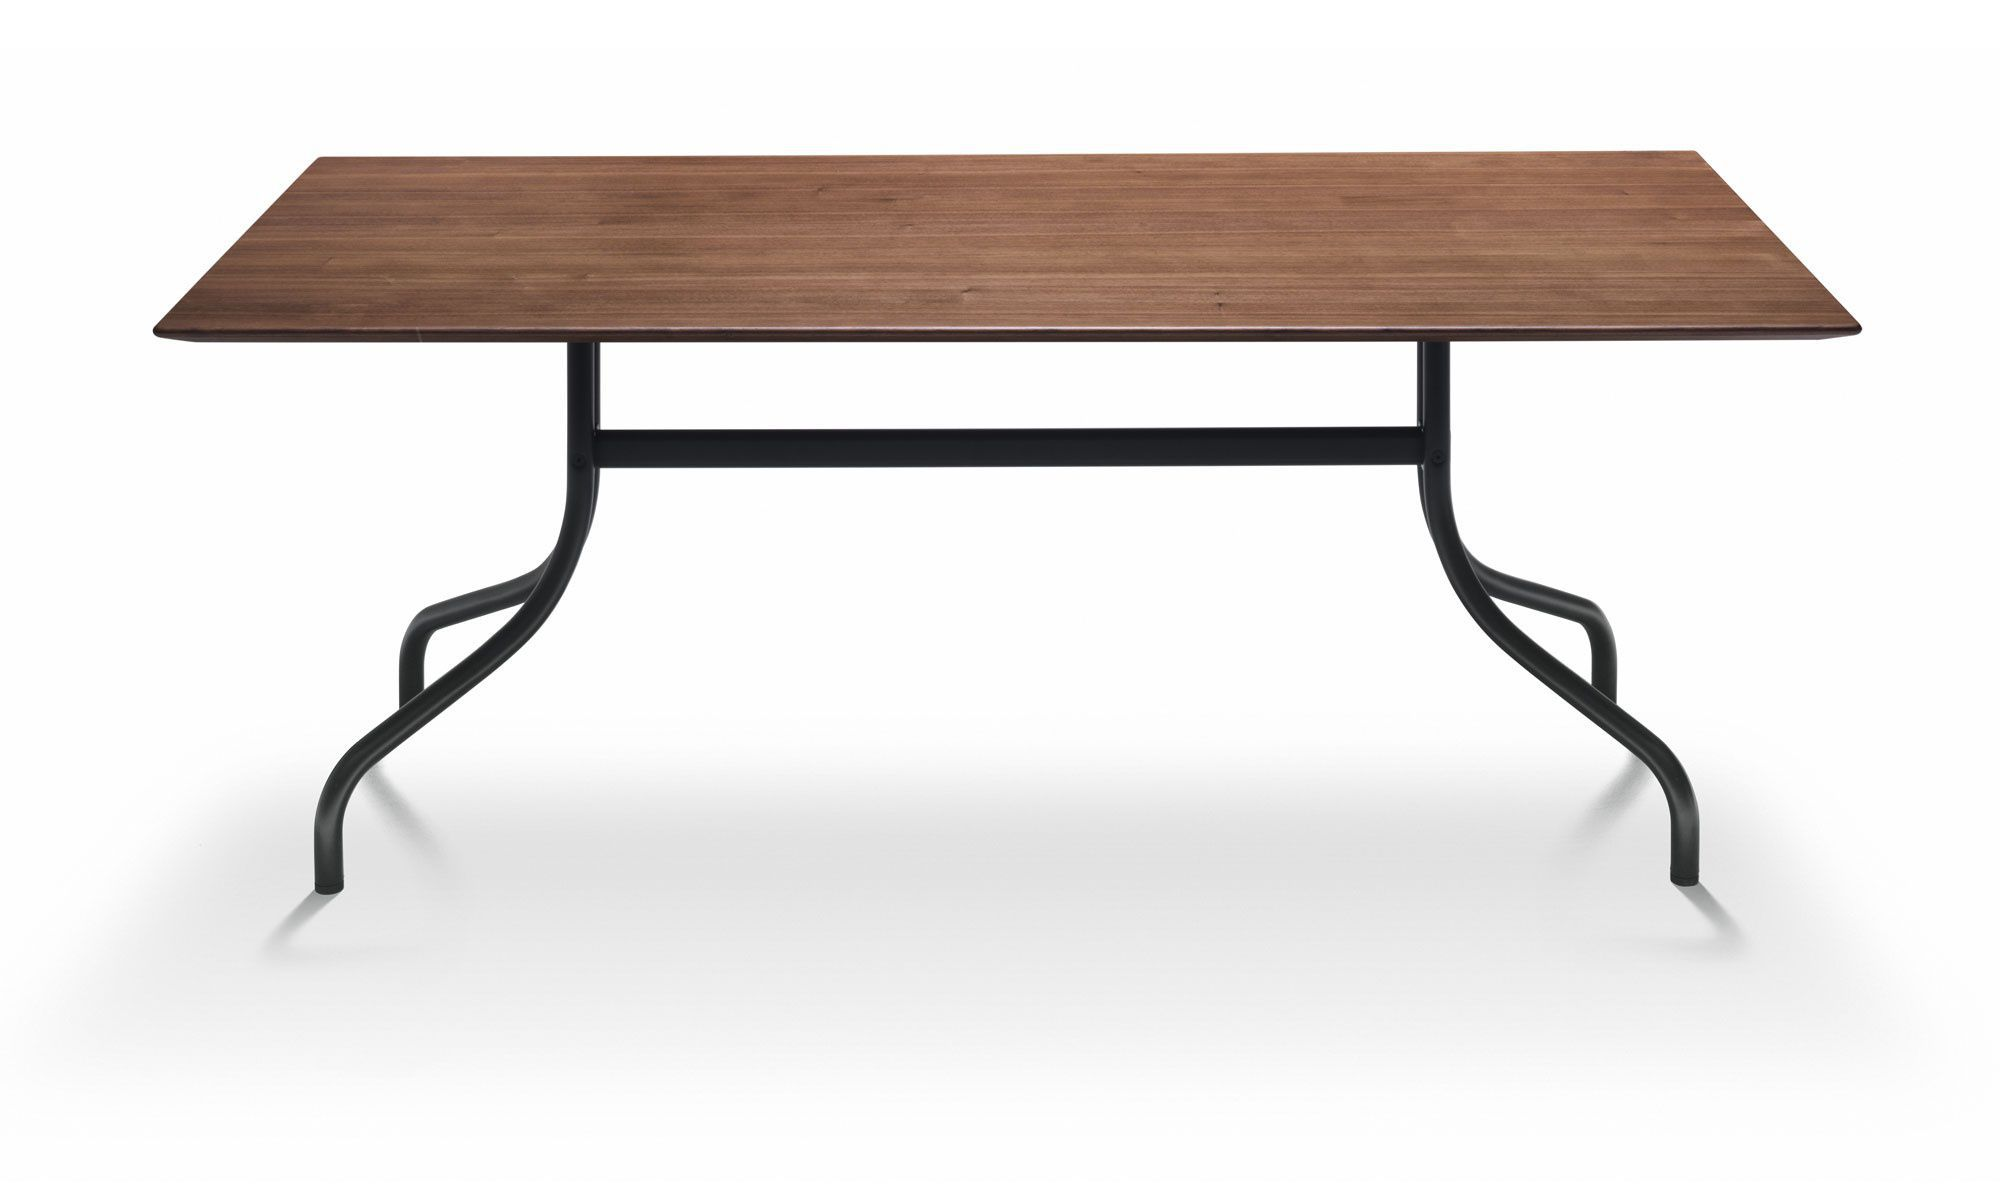 Lovely ... Contemporary Dining Table / Solid Wood / Rectangular / Square SHINE  DePadova ...